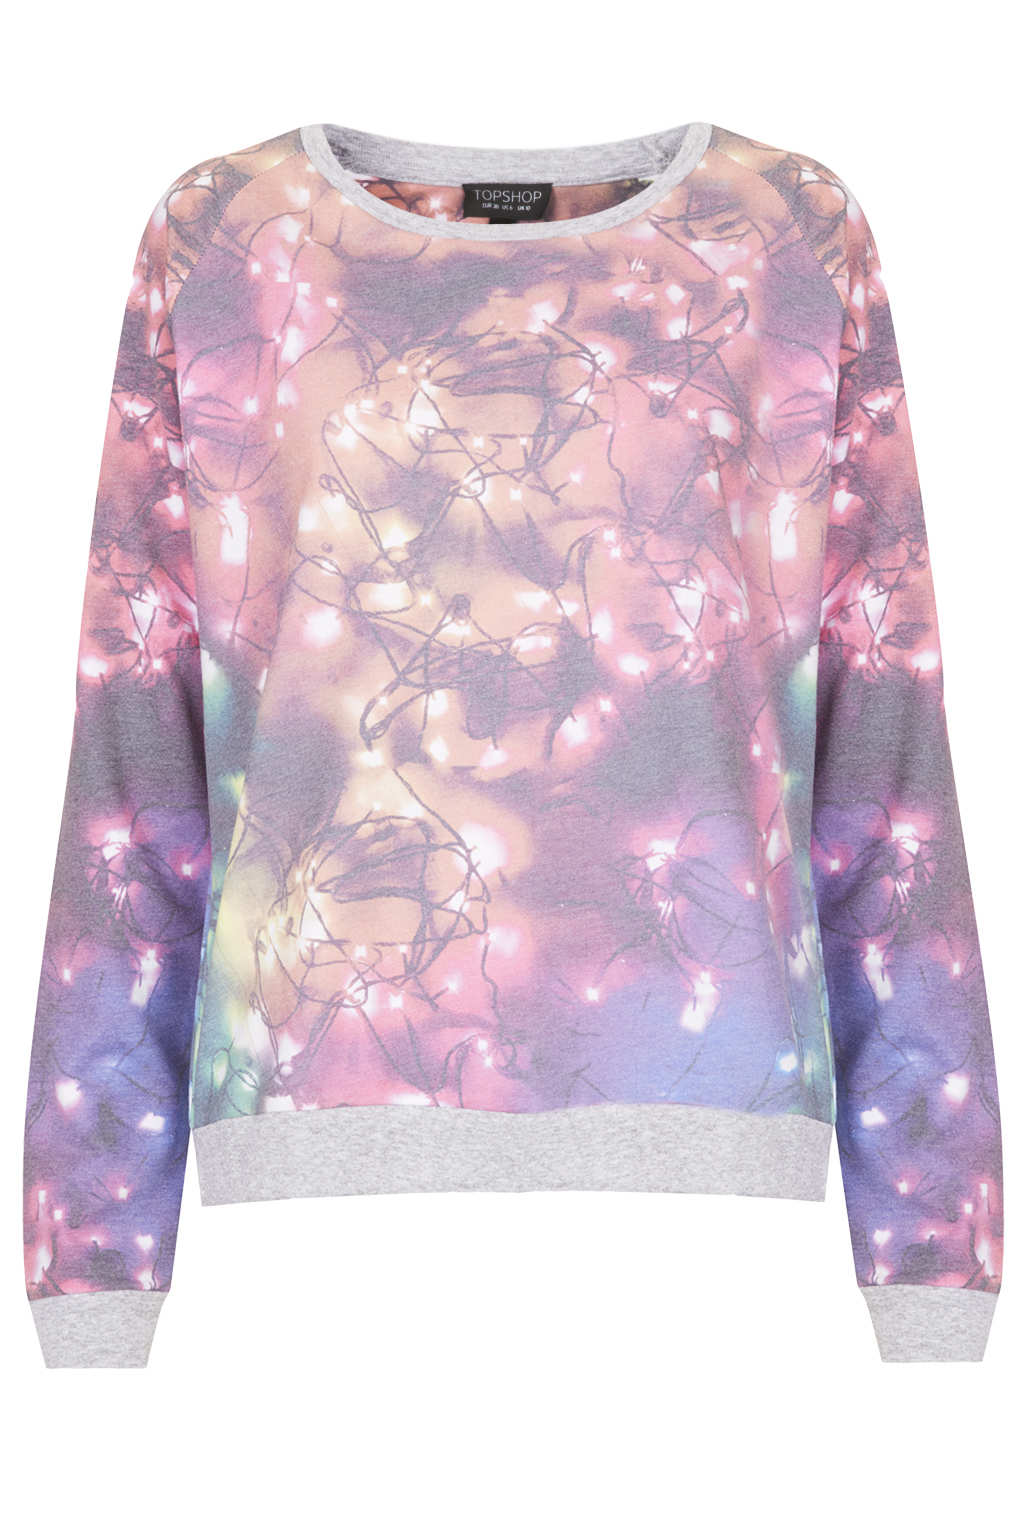 Fairy-Lights-Loungewear-Top